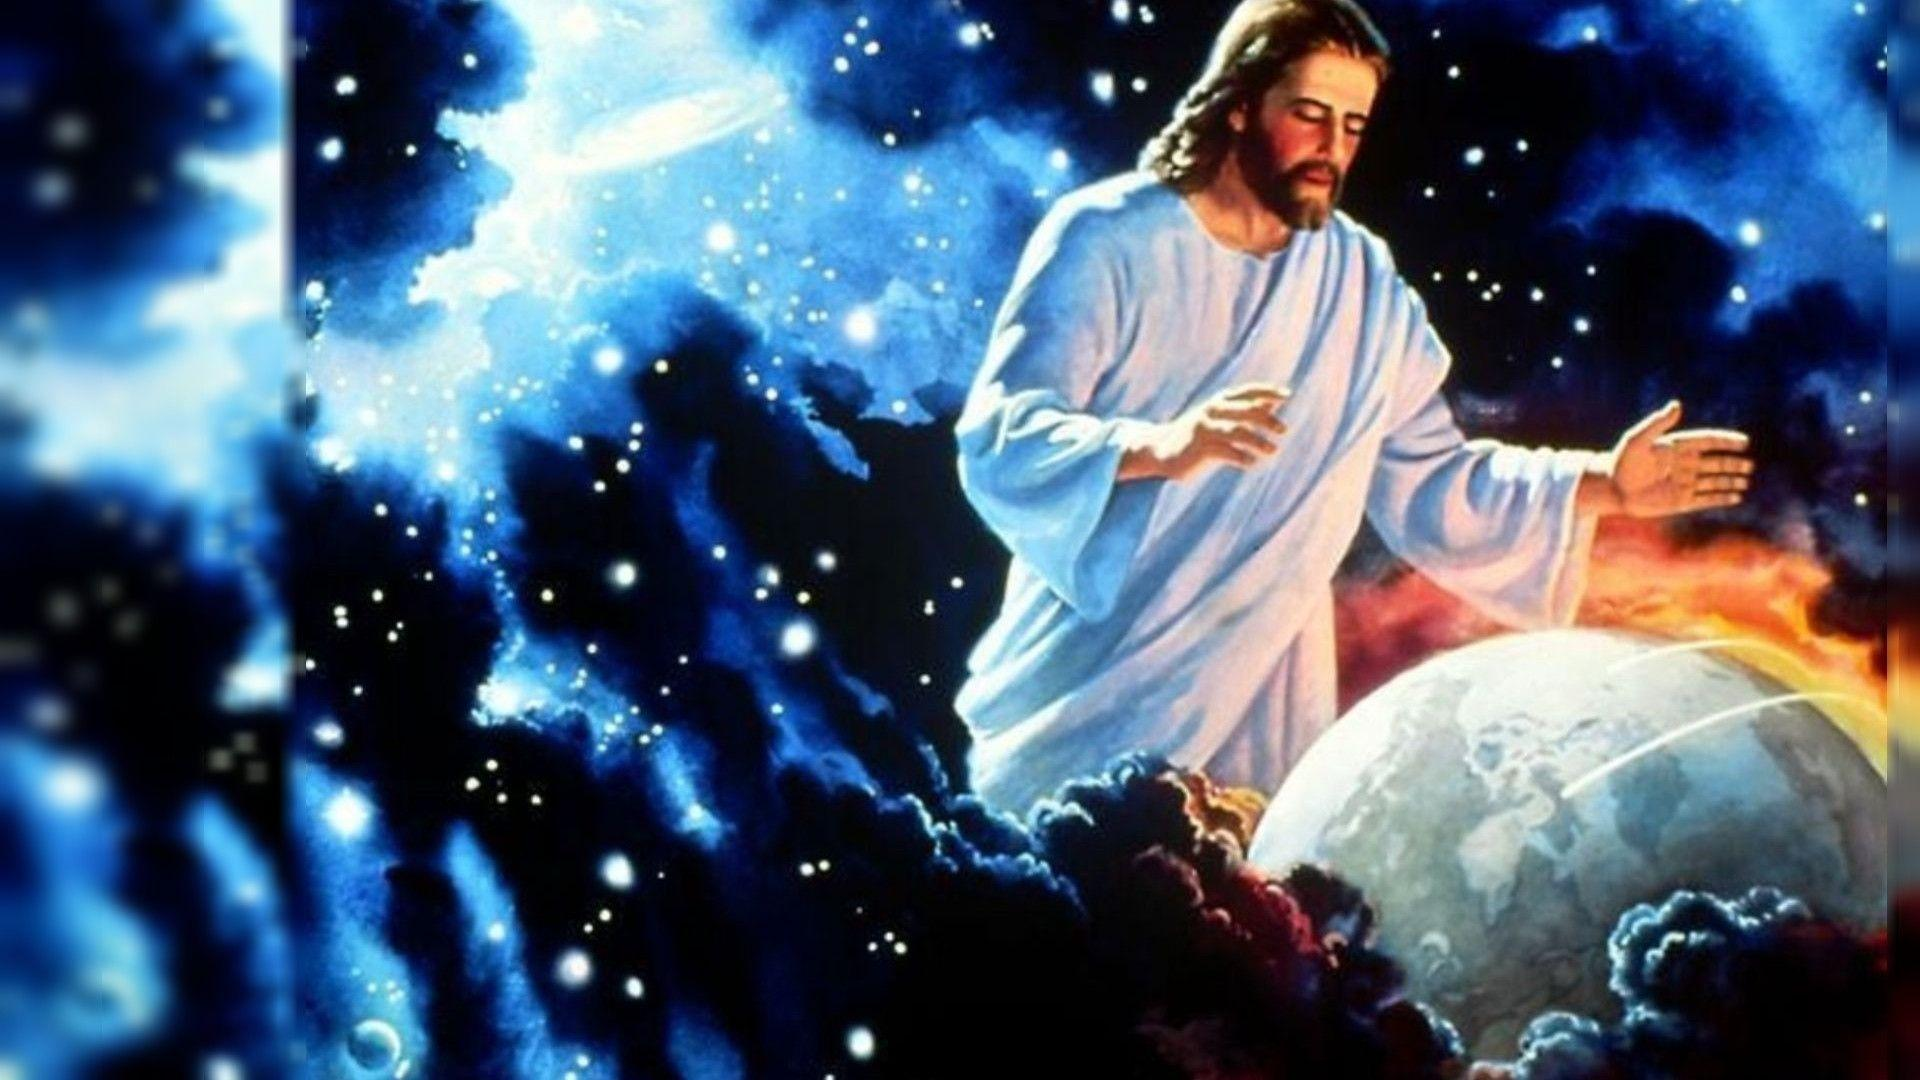 jesus christ hd wallpapers